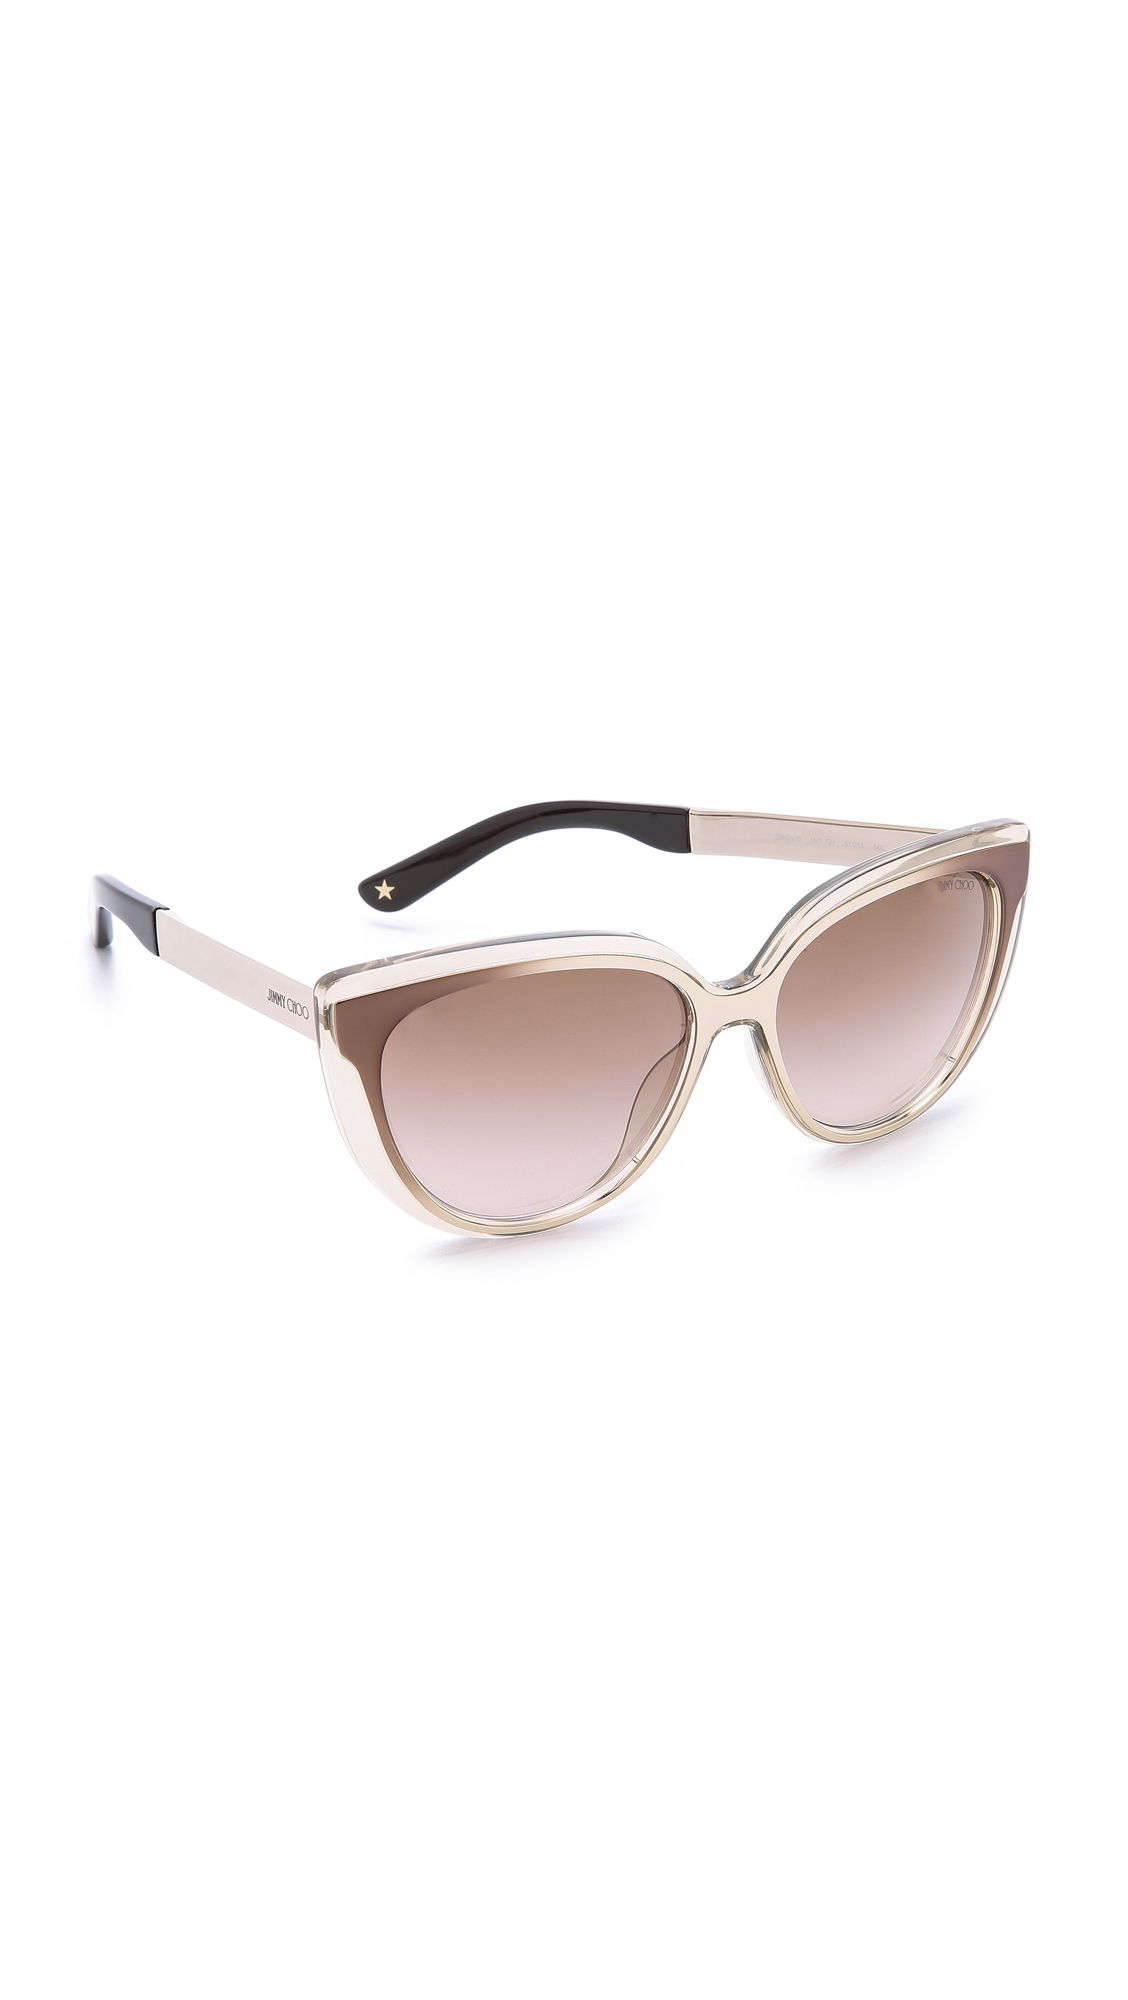 d8ce6800f6a6 Gallery. Previously sold at  Shopbop · Women s Jimmy Choo Cindy ...